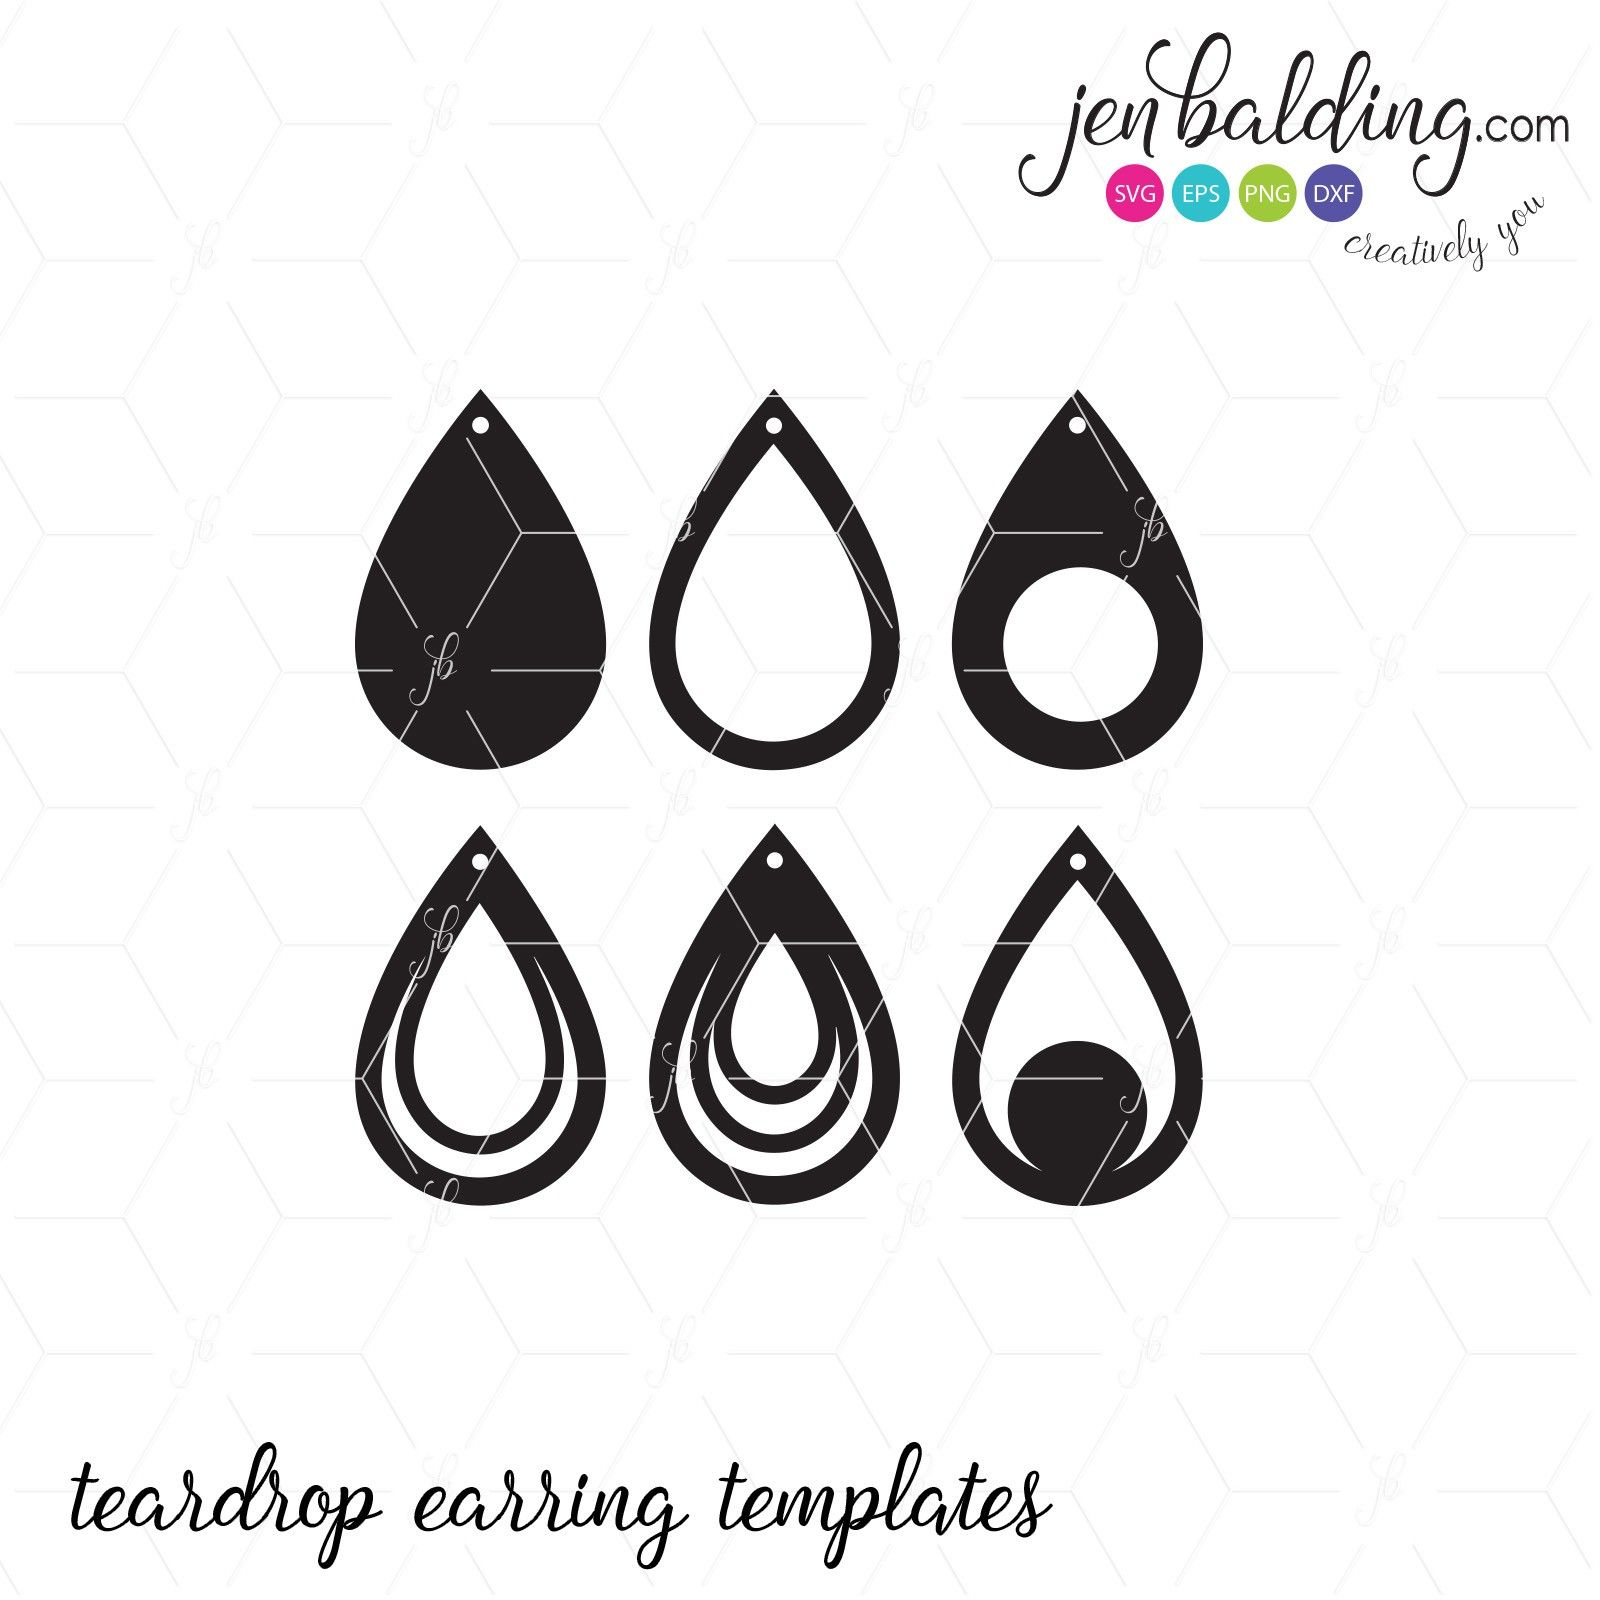 Download Free Svg Card Templates | Free earrings, Leather earrings